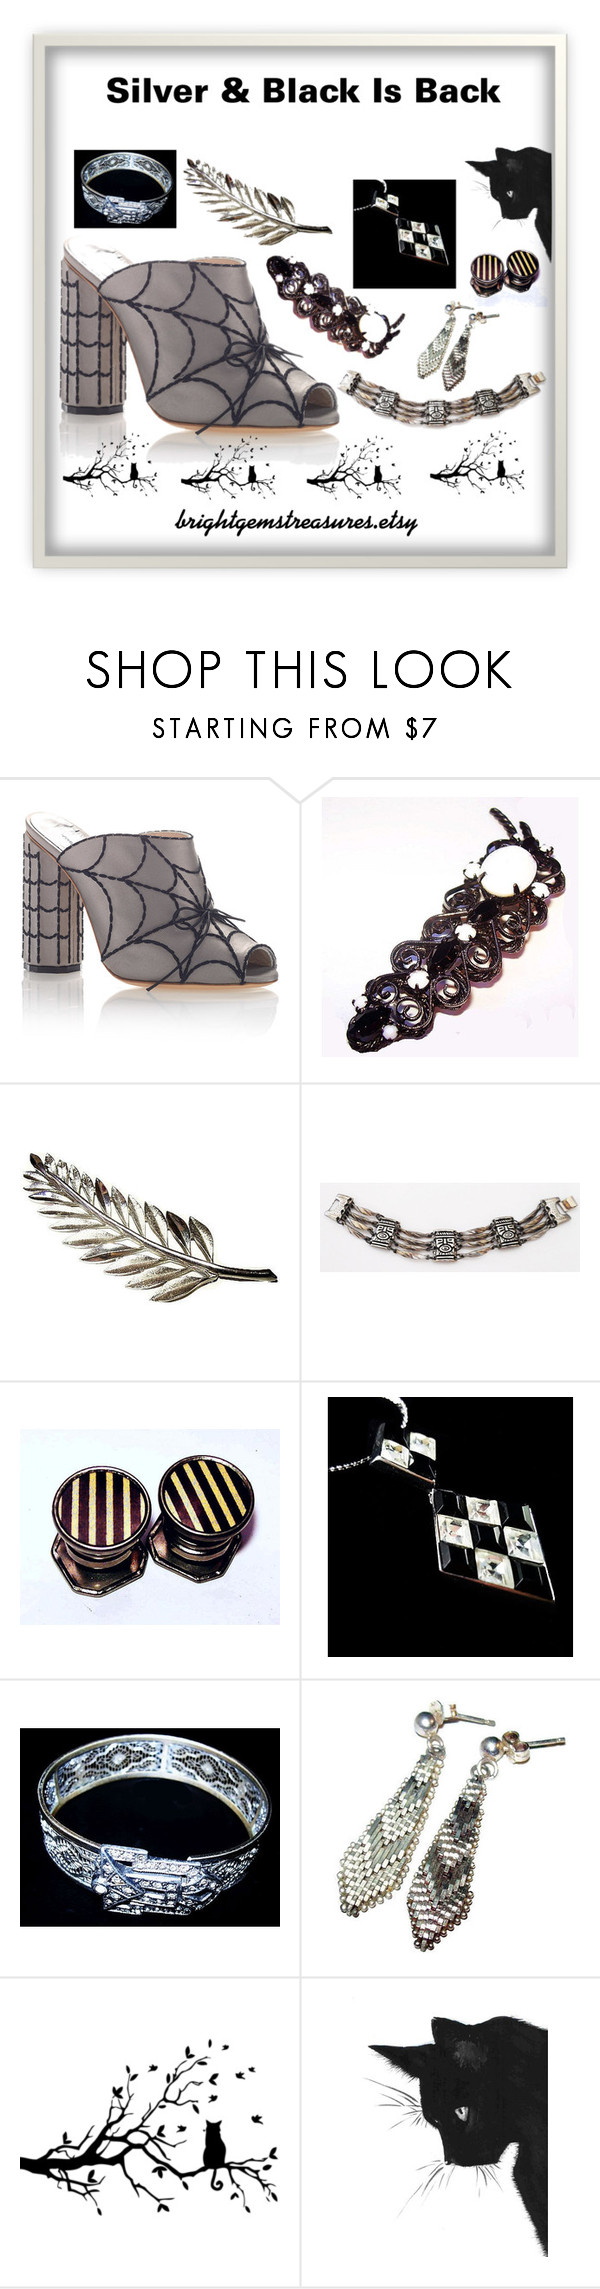 """silver & black is back"" by brightgemsu ❤ liked on Polyvore featuring Marco de Vincenzo, Trifari and WALL"